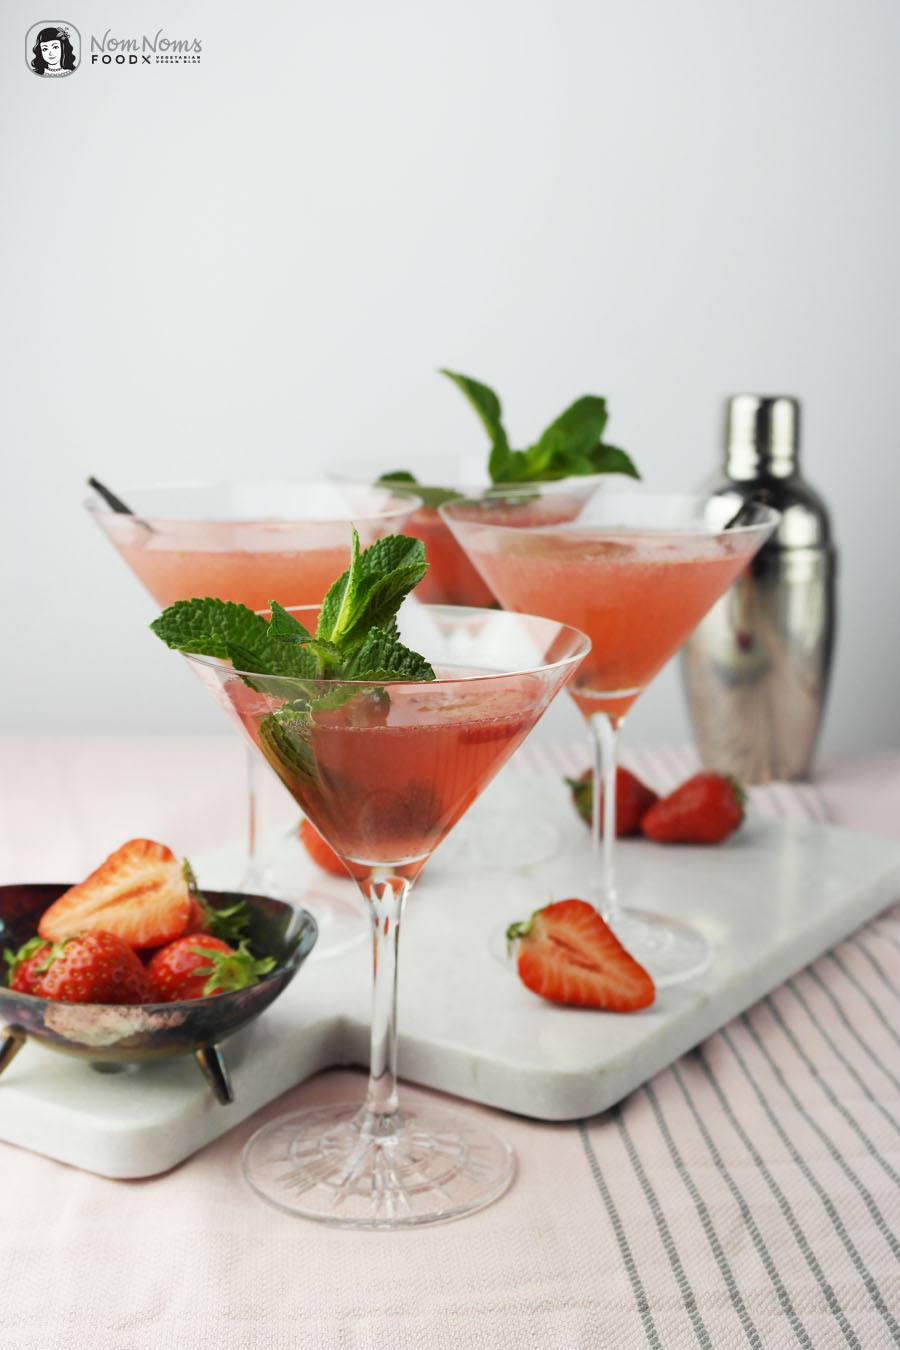 Cocktail-Klassiker: Erdbeer-Cosmopolitan mit Vanille oder Minze | Cocktail Classic: Strawberry Cosmopolitan with Vanilla or Mint